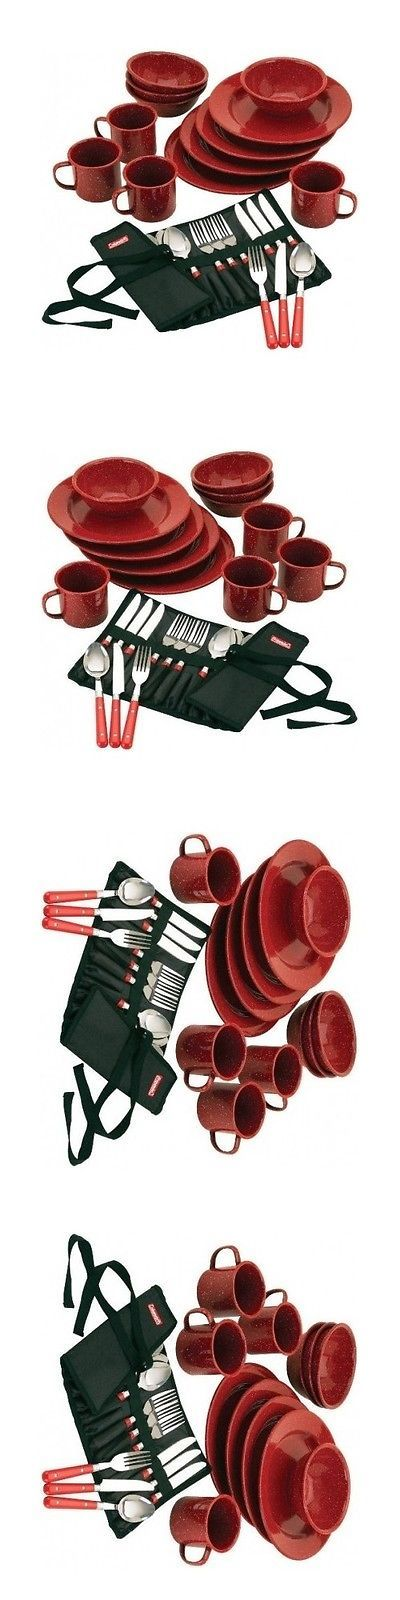 Camping Cooking Utensils 87133: Outdoor Dining Sets Camping Eating Utensils Equipment Coleman Dinnerware Plates -> BUY IT NOW ONLY: $56.99 on eBay!